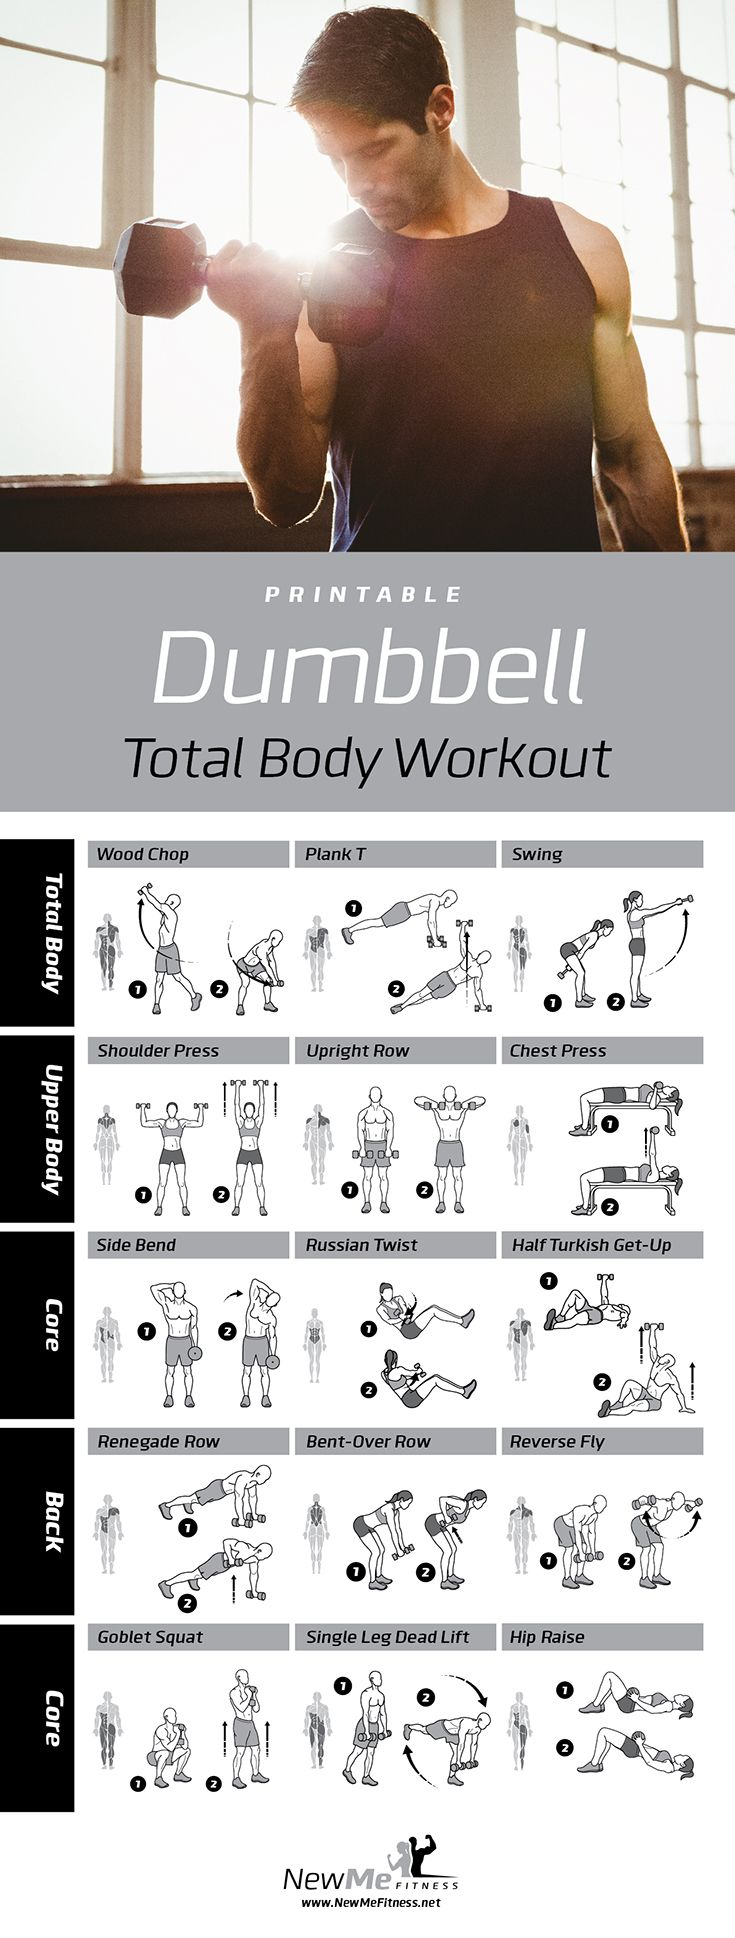 Dumbbell workout for all your major muscle groups. Build your dream body! Dumbell workout